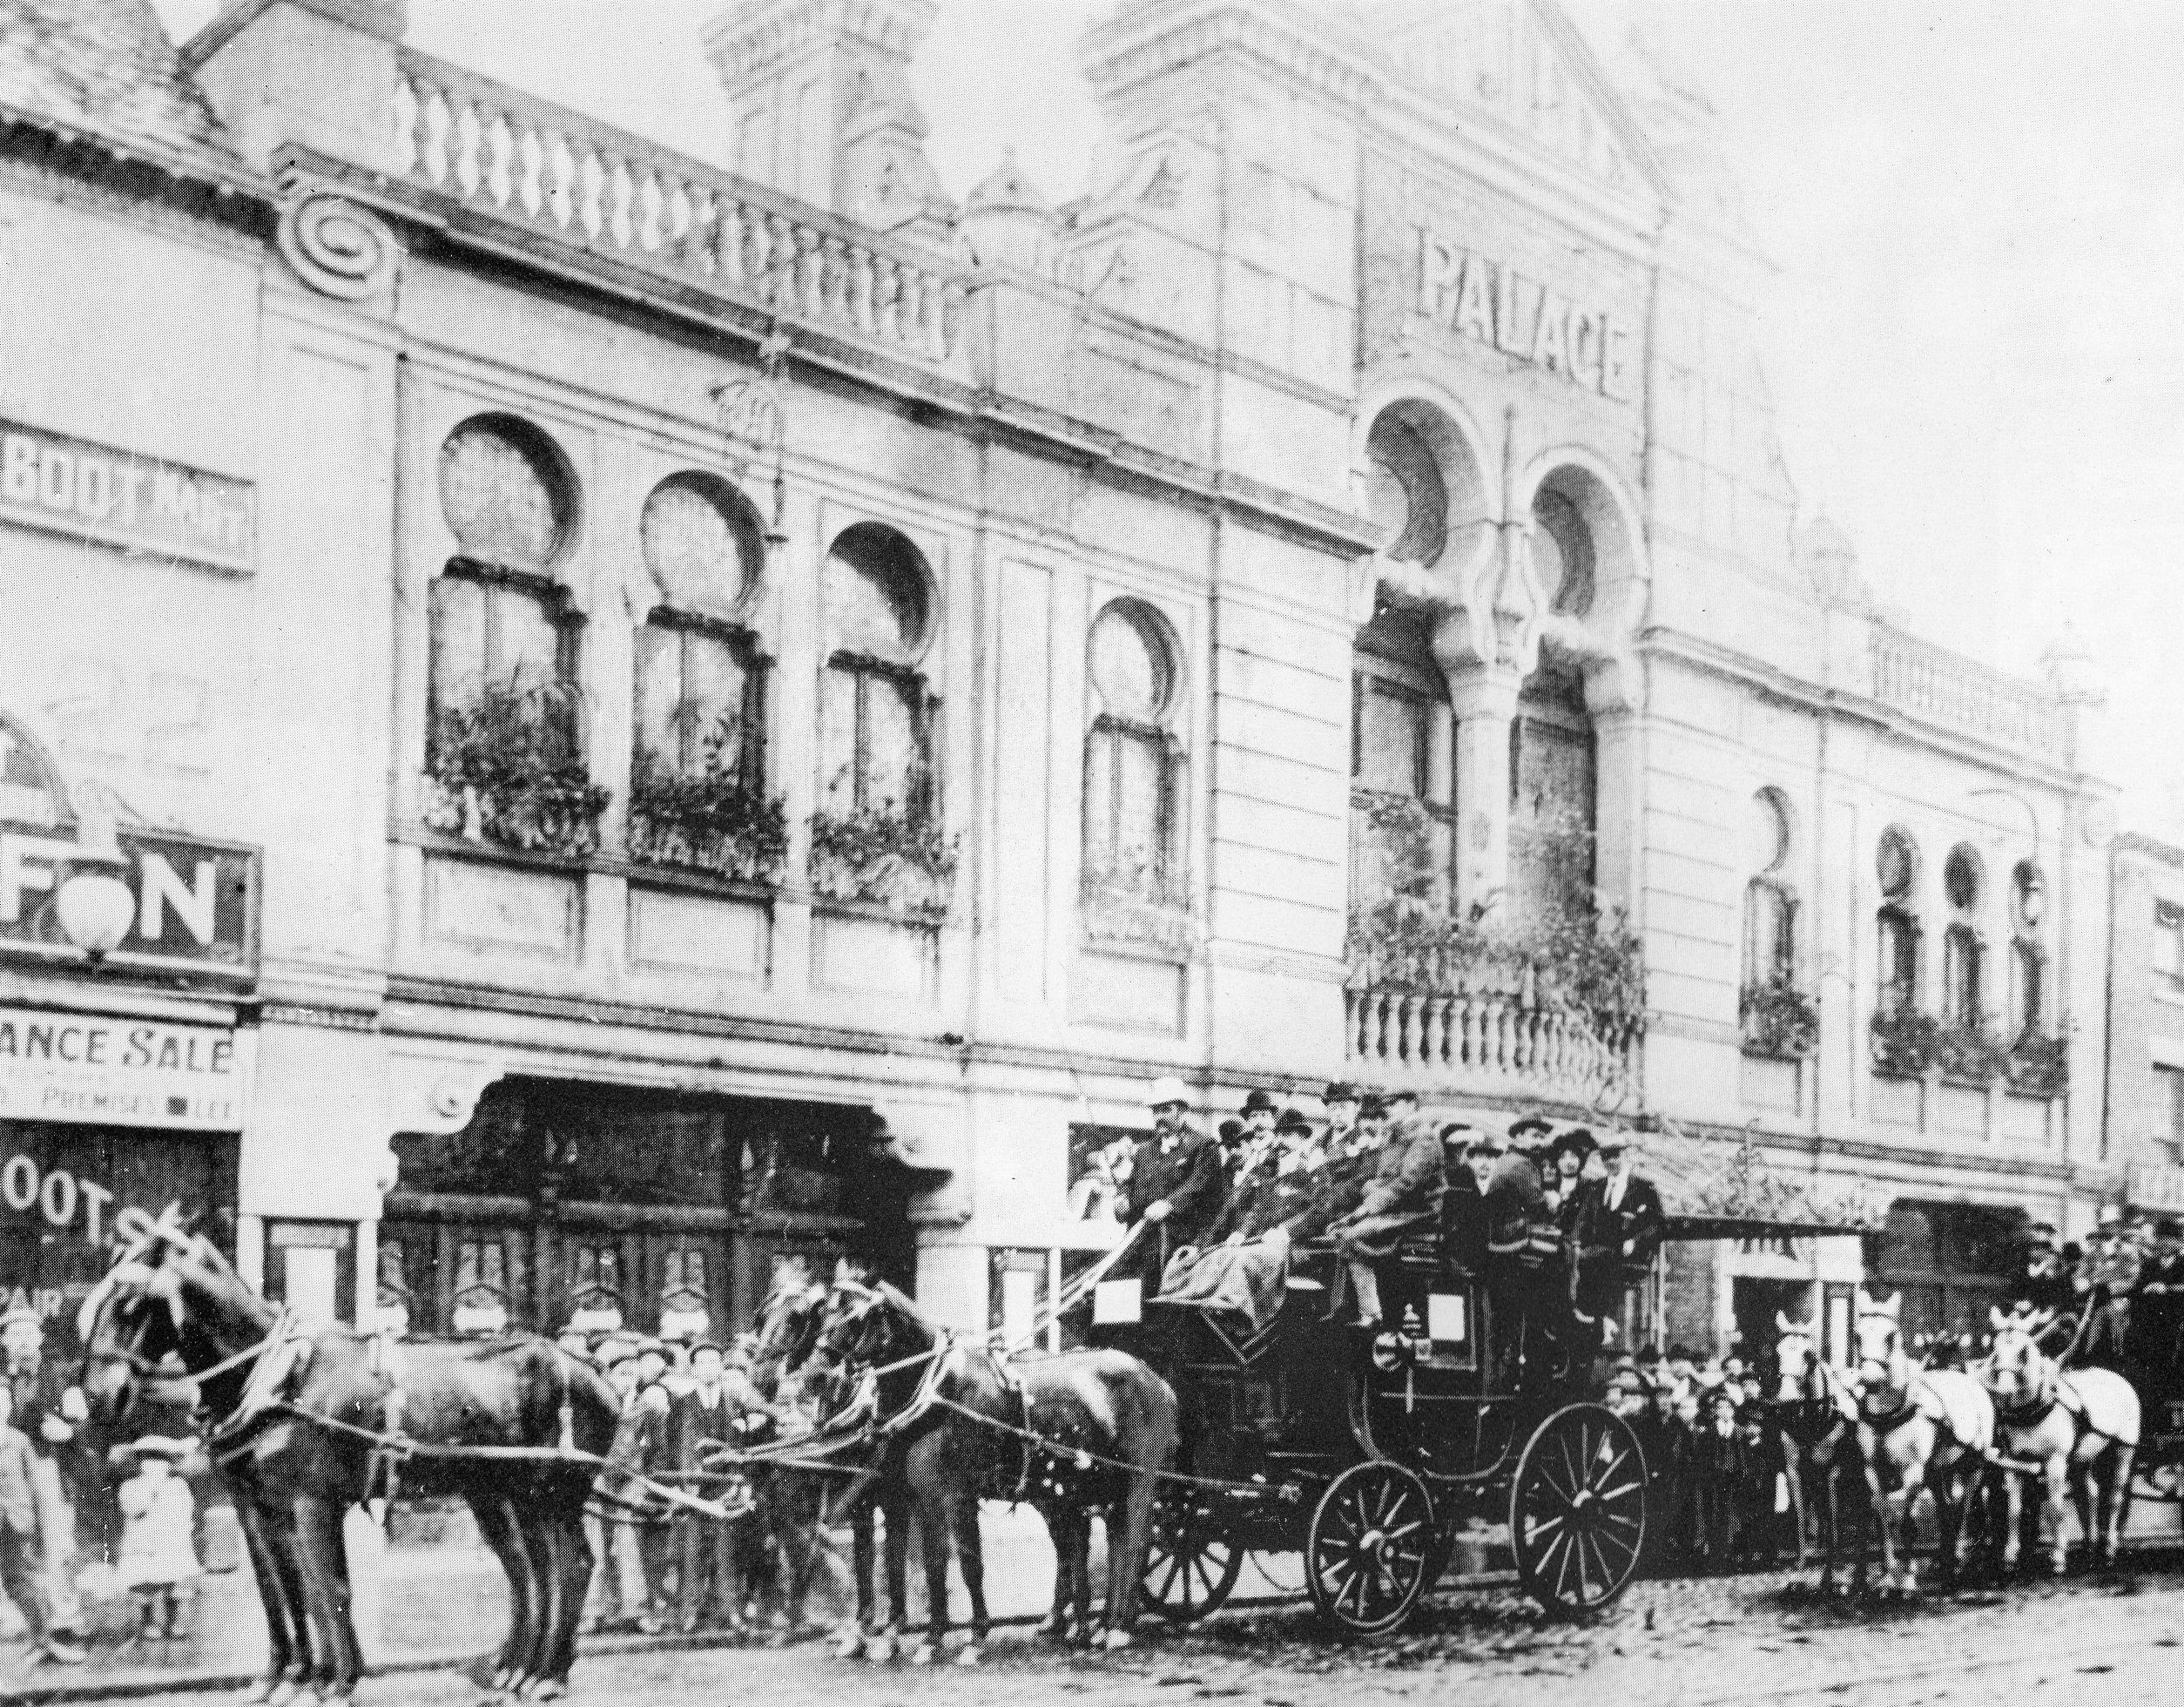 Palace Theatre LEICESTER